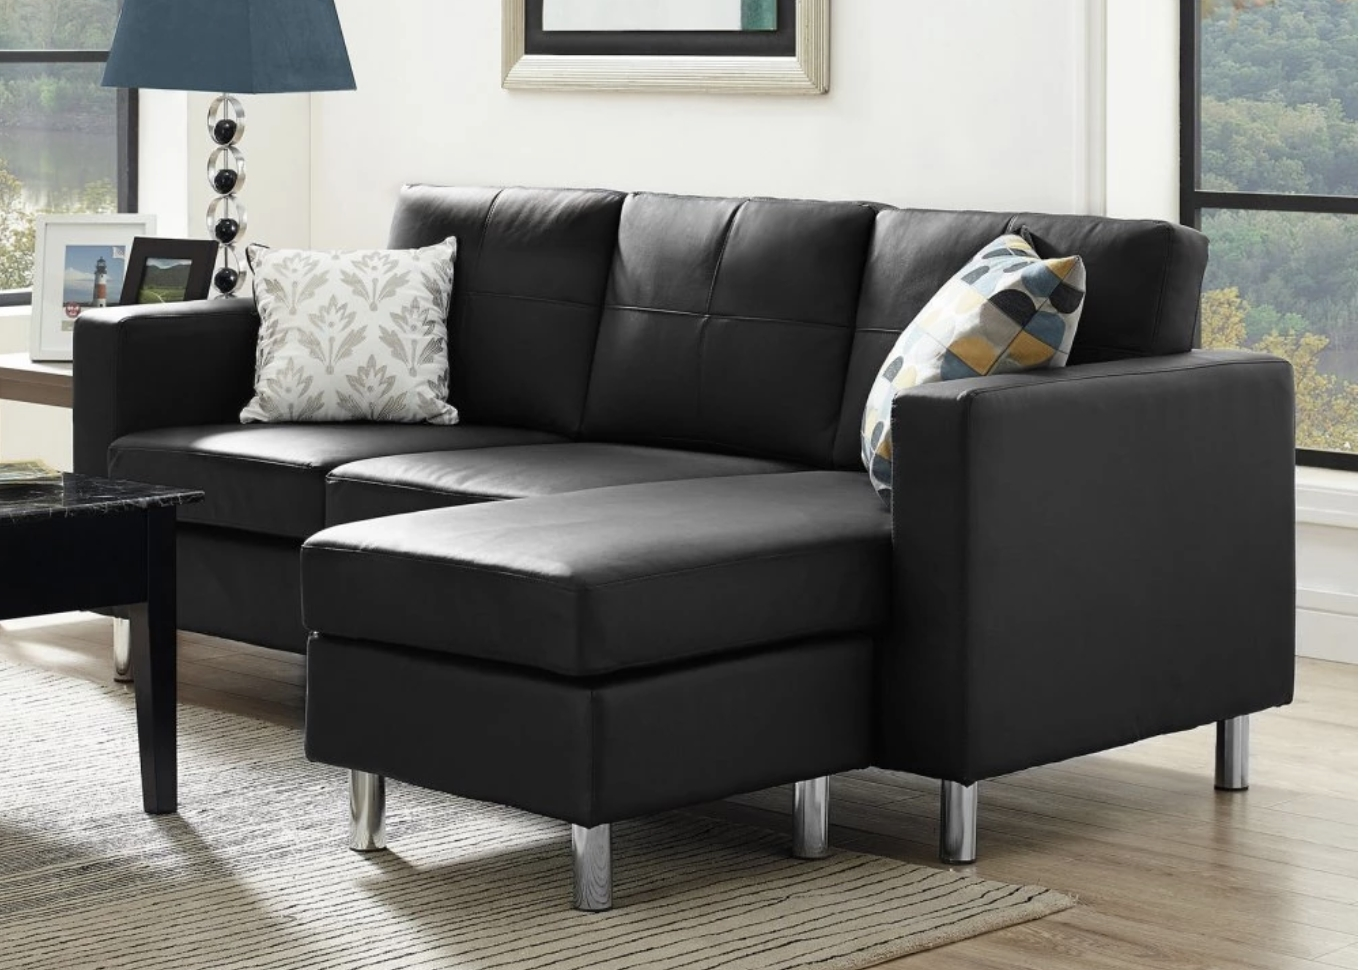 75 Modern Sectional Sofas For Small Spaces (2018) Intended For Latest Sectional Sofas In Small Spaces (Gallery 7 of 15)